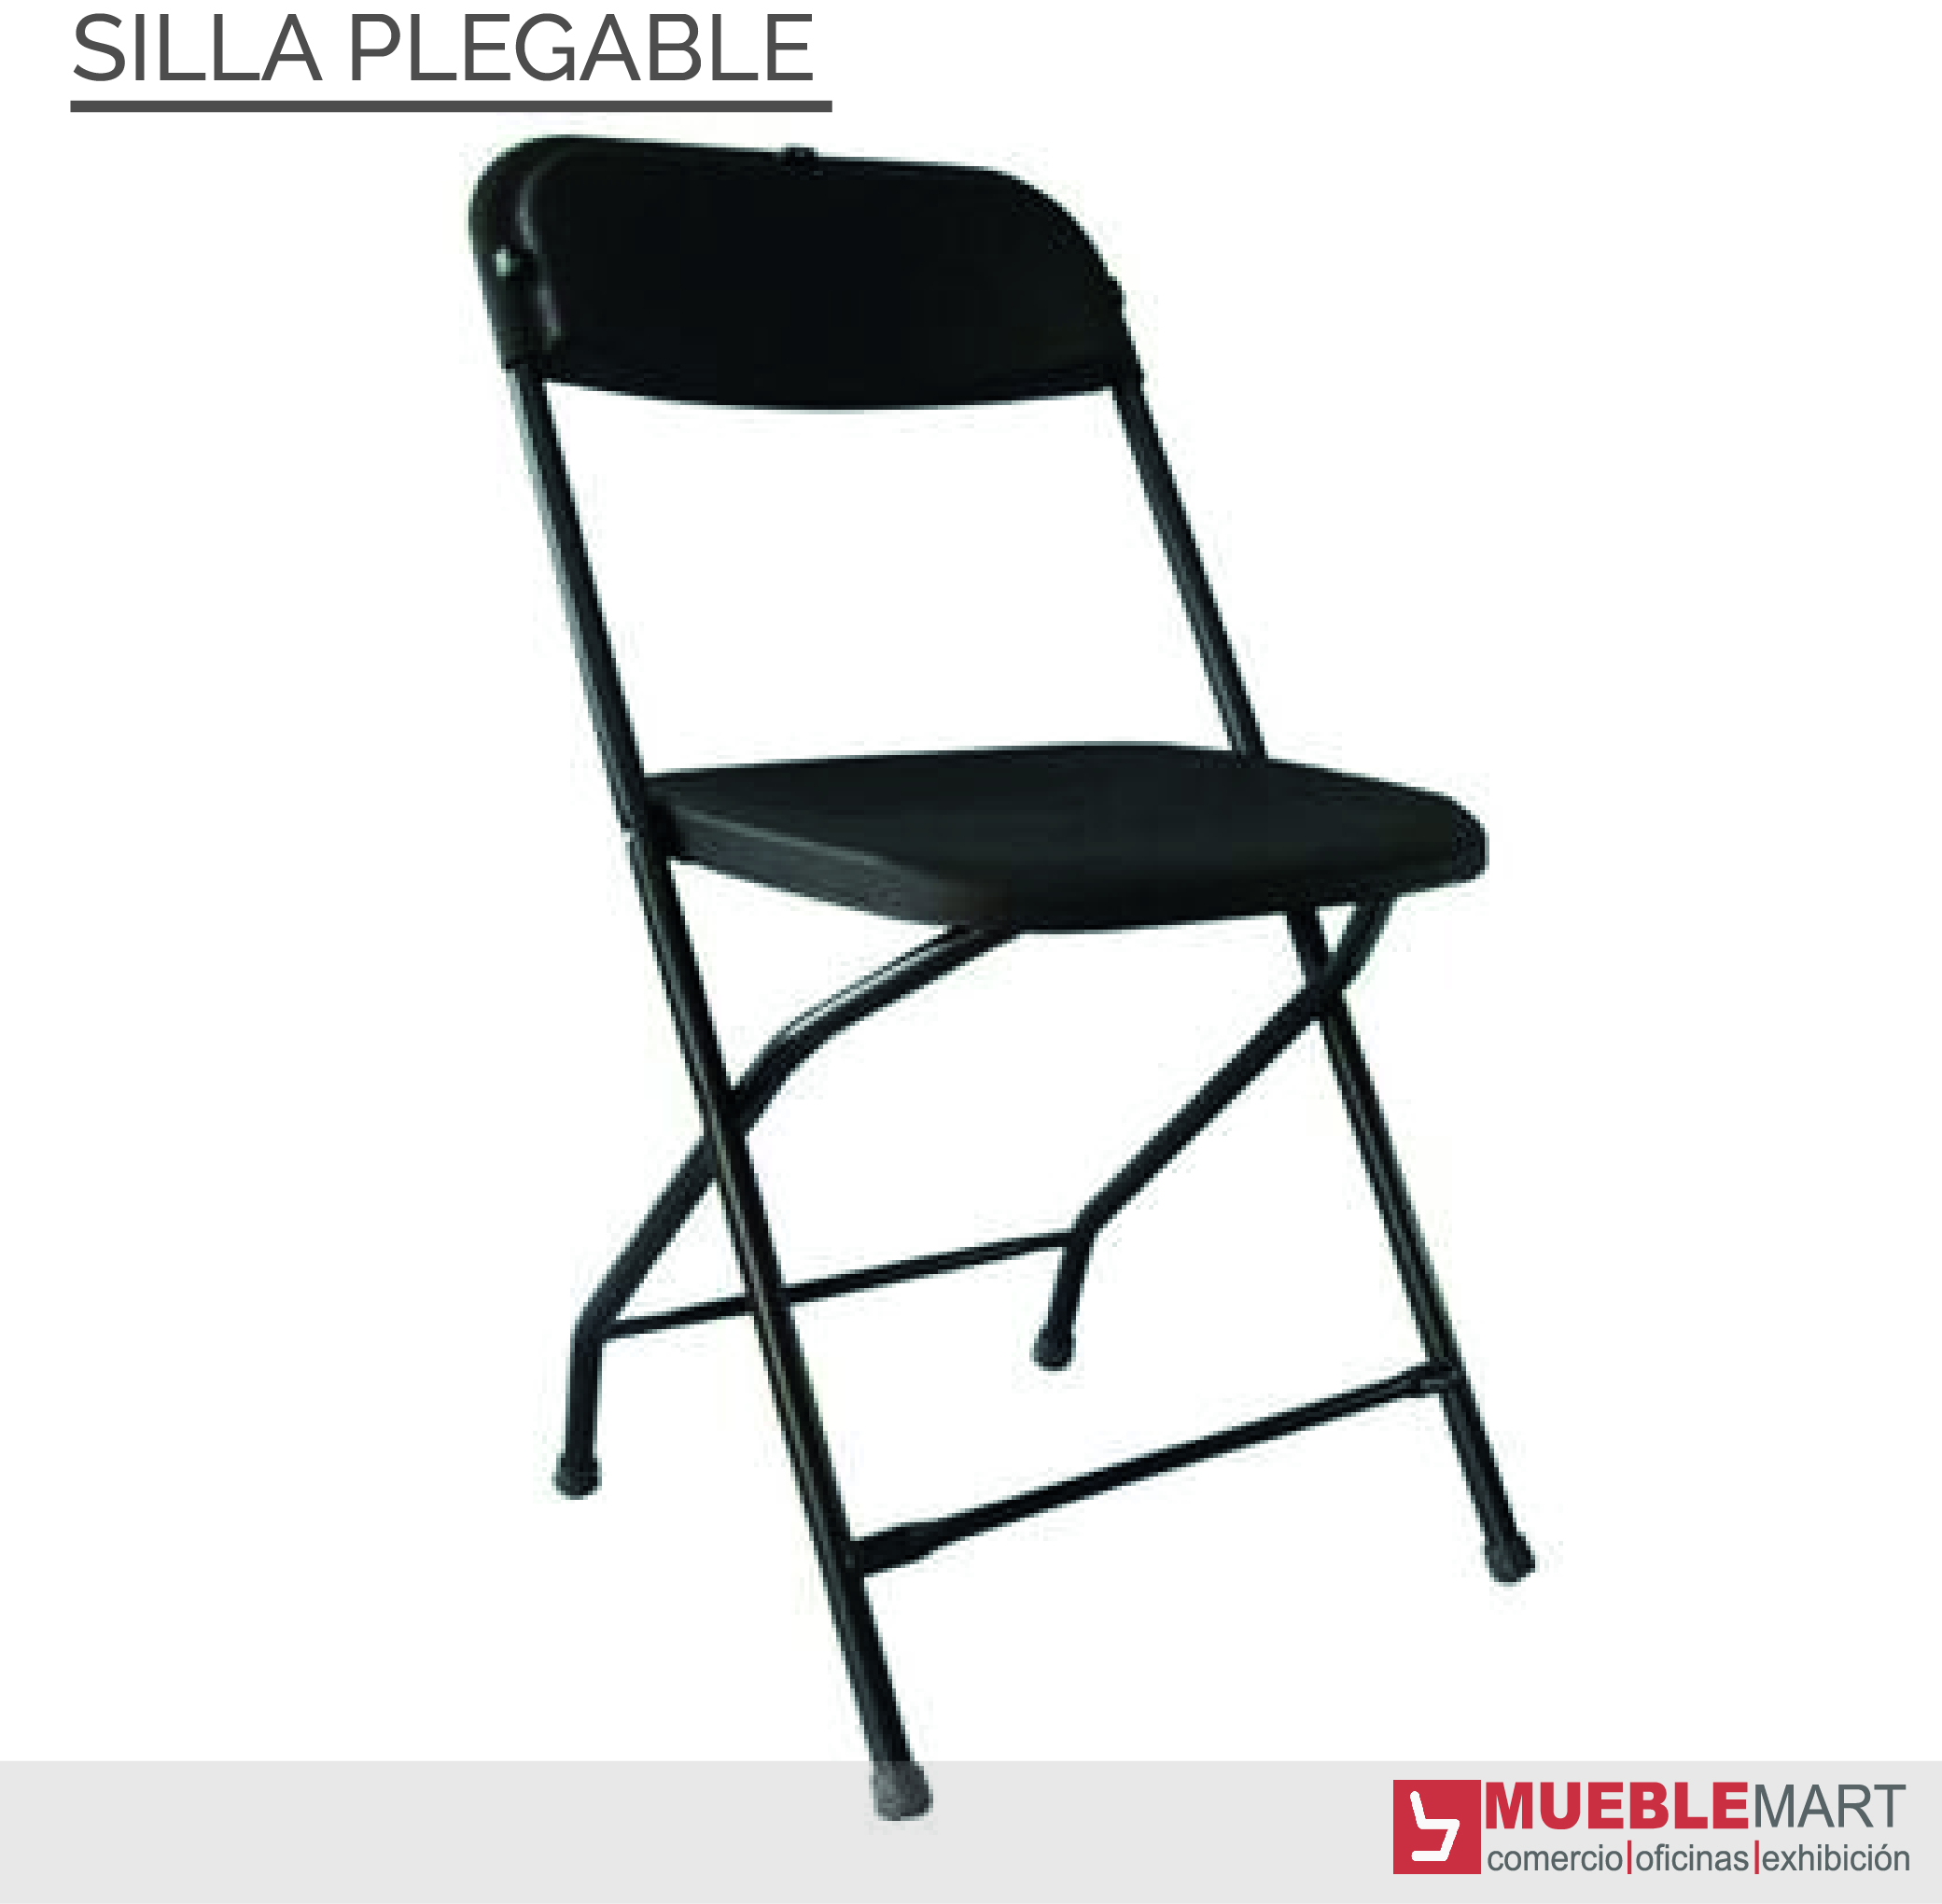 Silla plegable plegables for Sillas plegables comodas